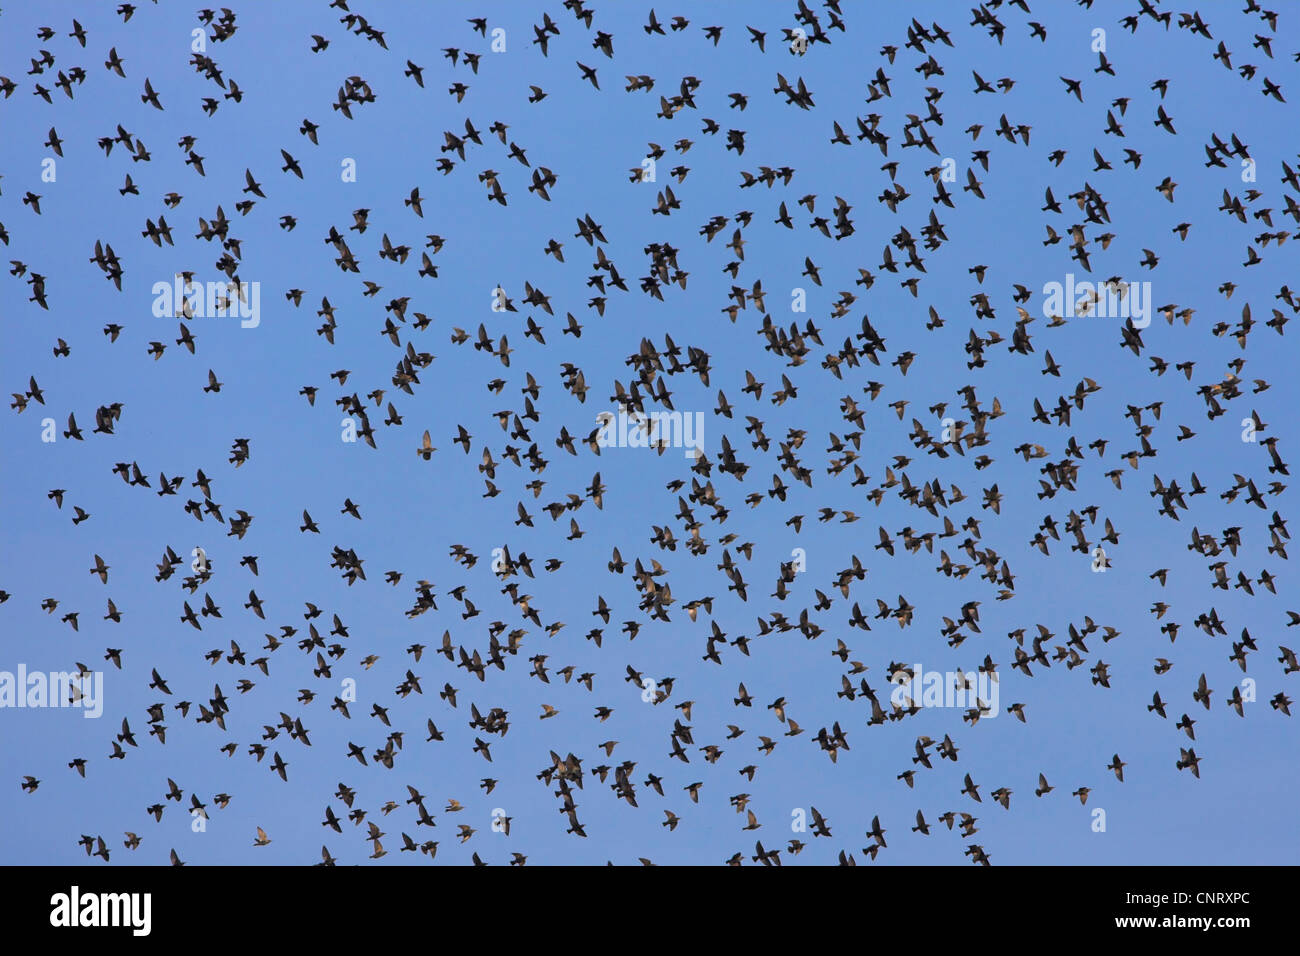 common starling (Sturnus vulgaris), flying flock, Germany, Rhineland-Palatinate Stock Photo